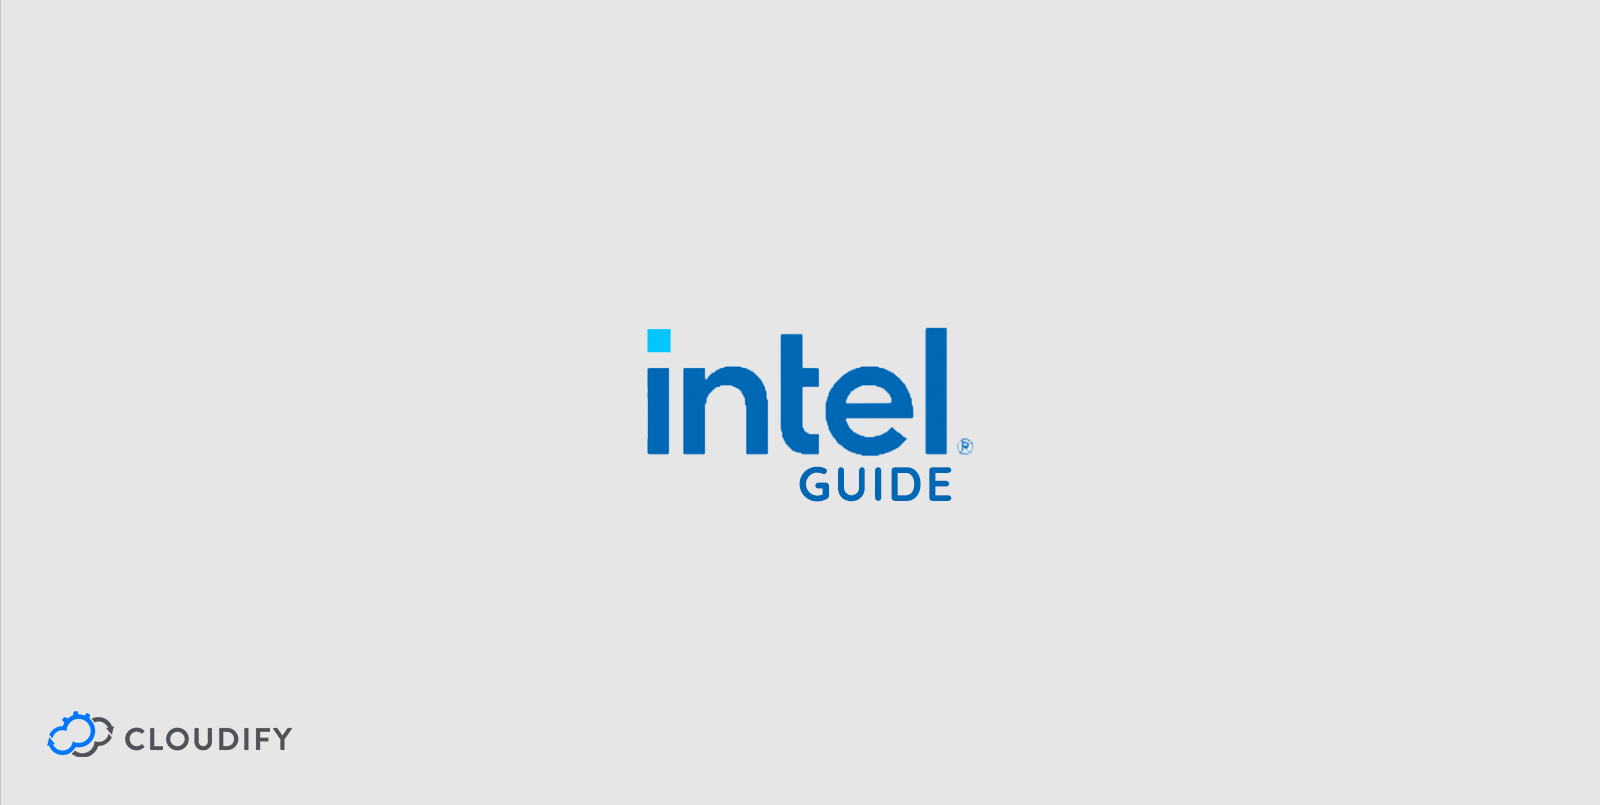 Intel Guide: Cloudify orchestration, Kubernetes cloud technologies, and High Performance Computing are merging in Financial Services workloads